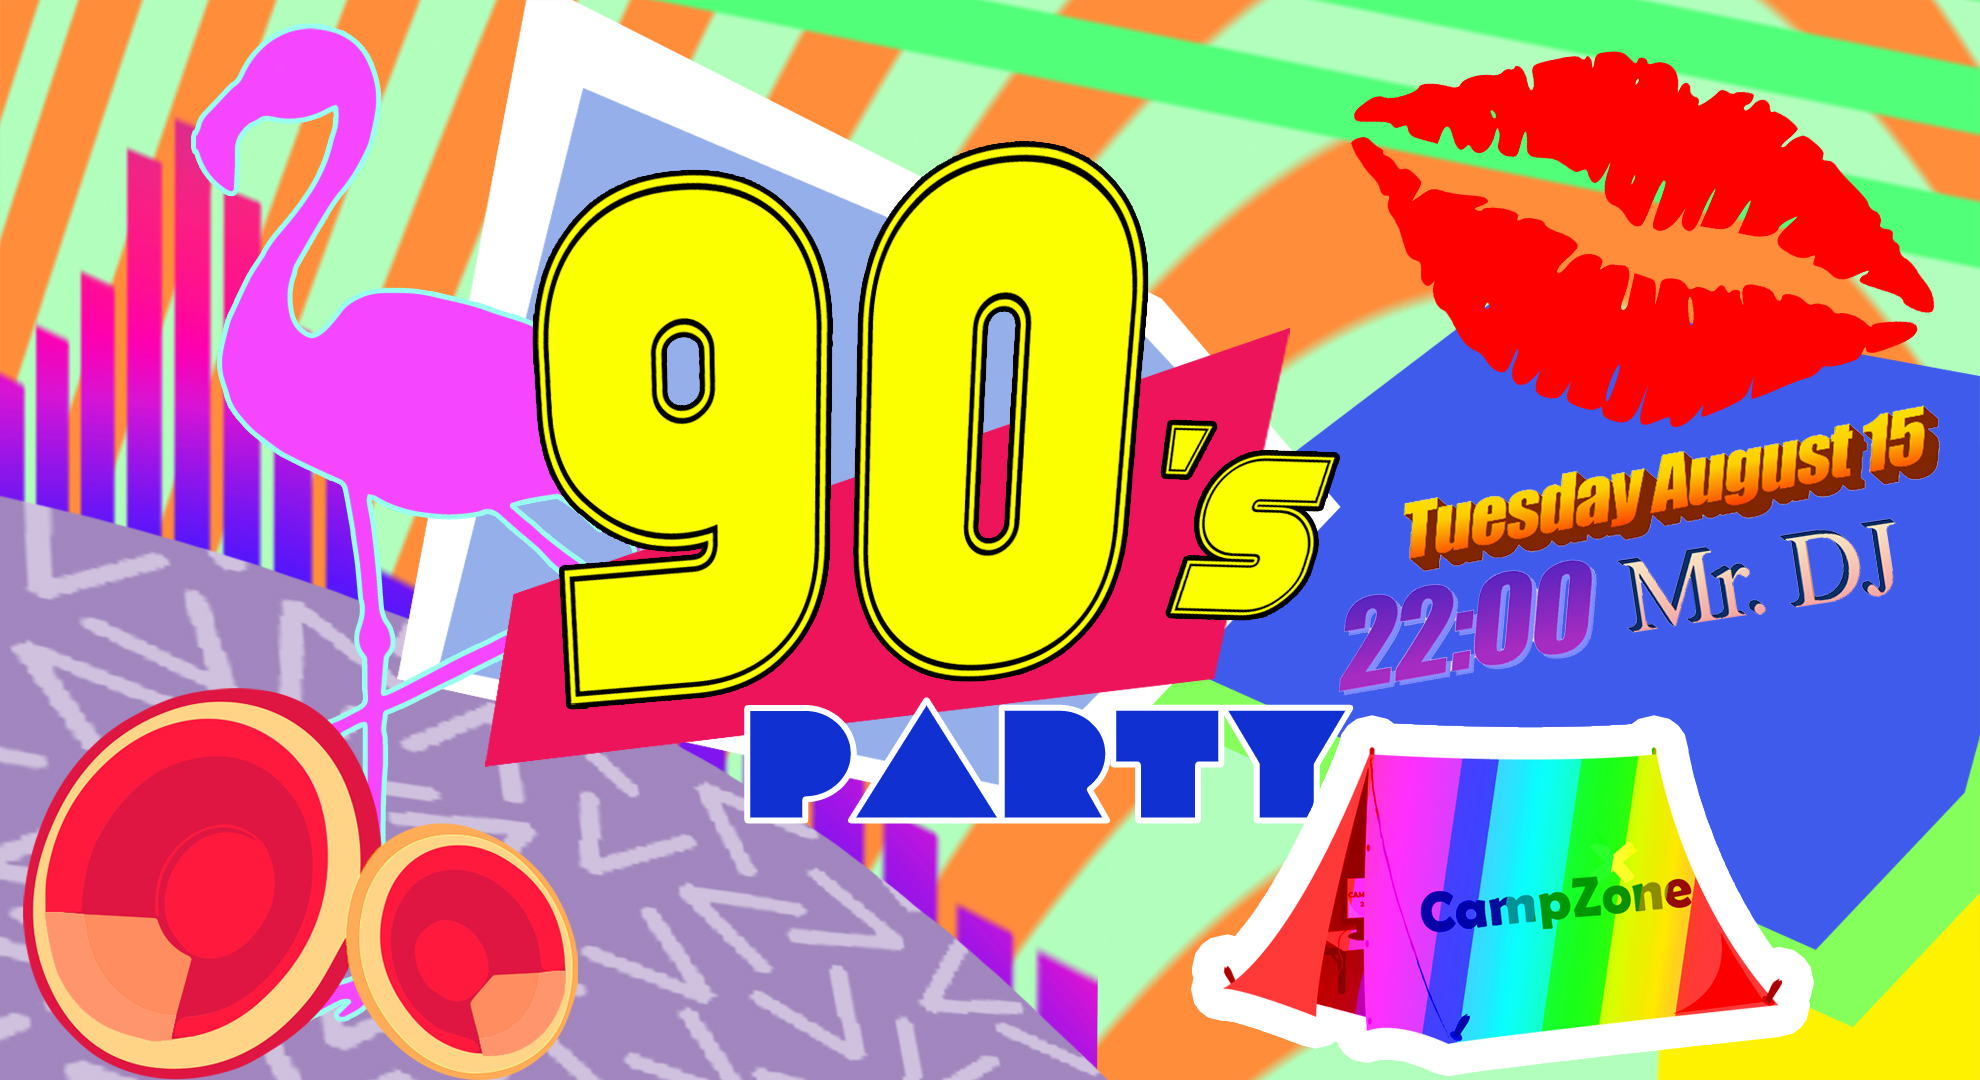 CampZone 90s Party